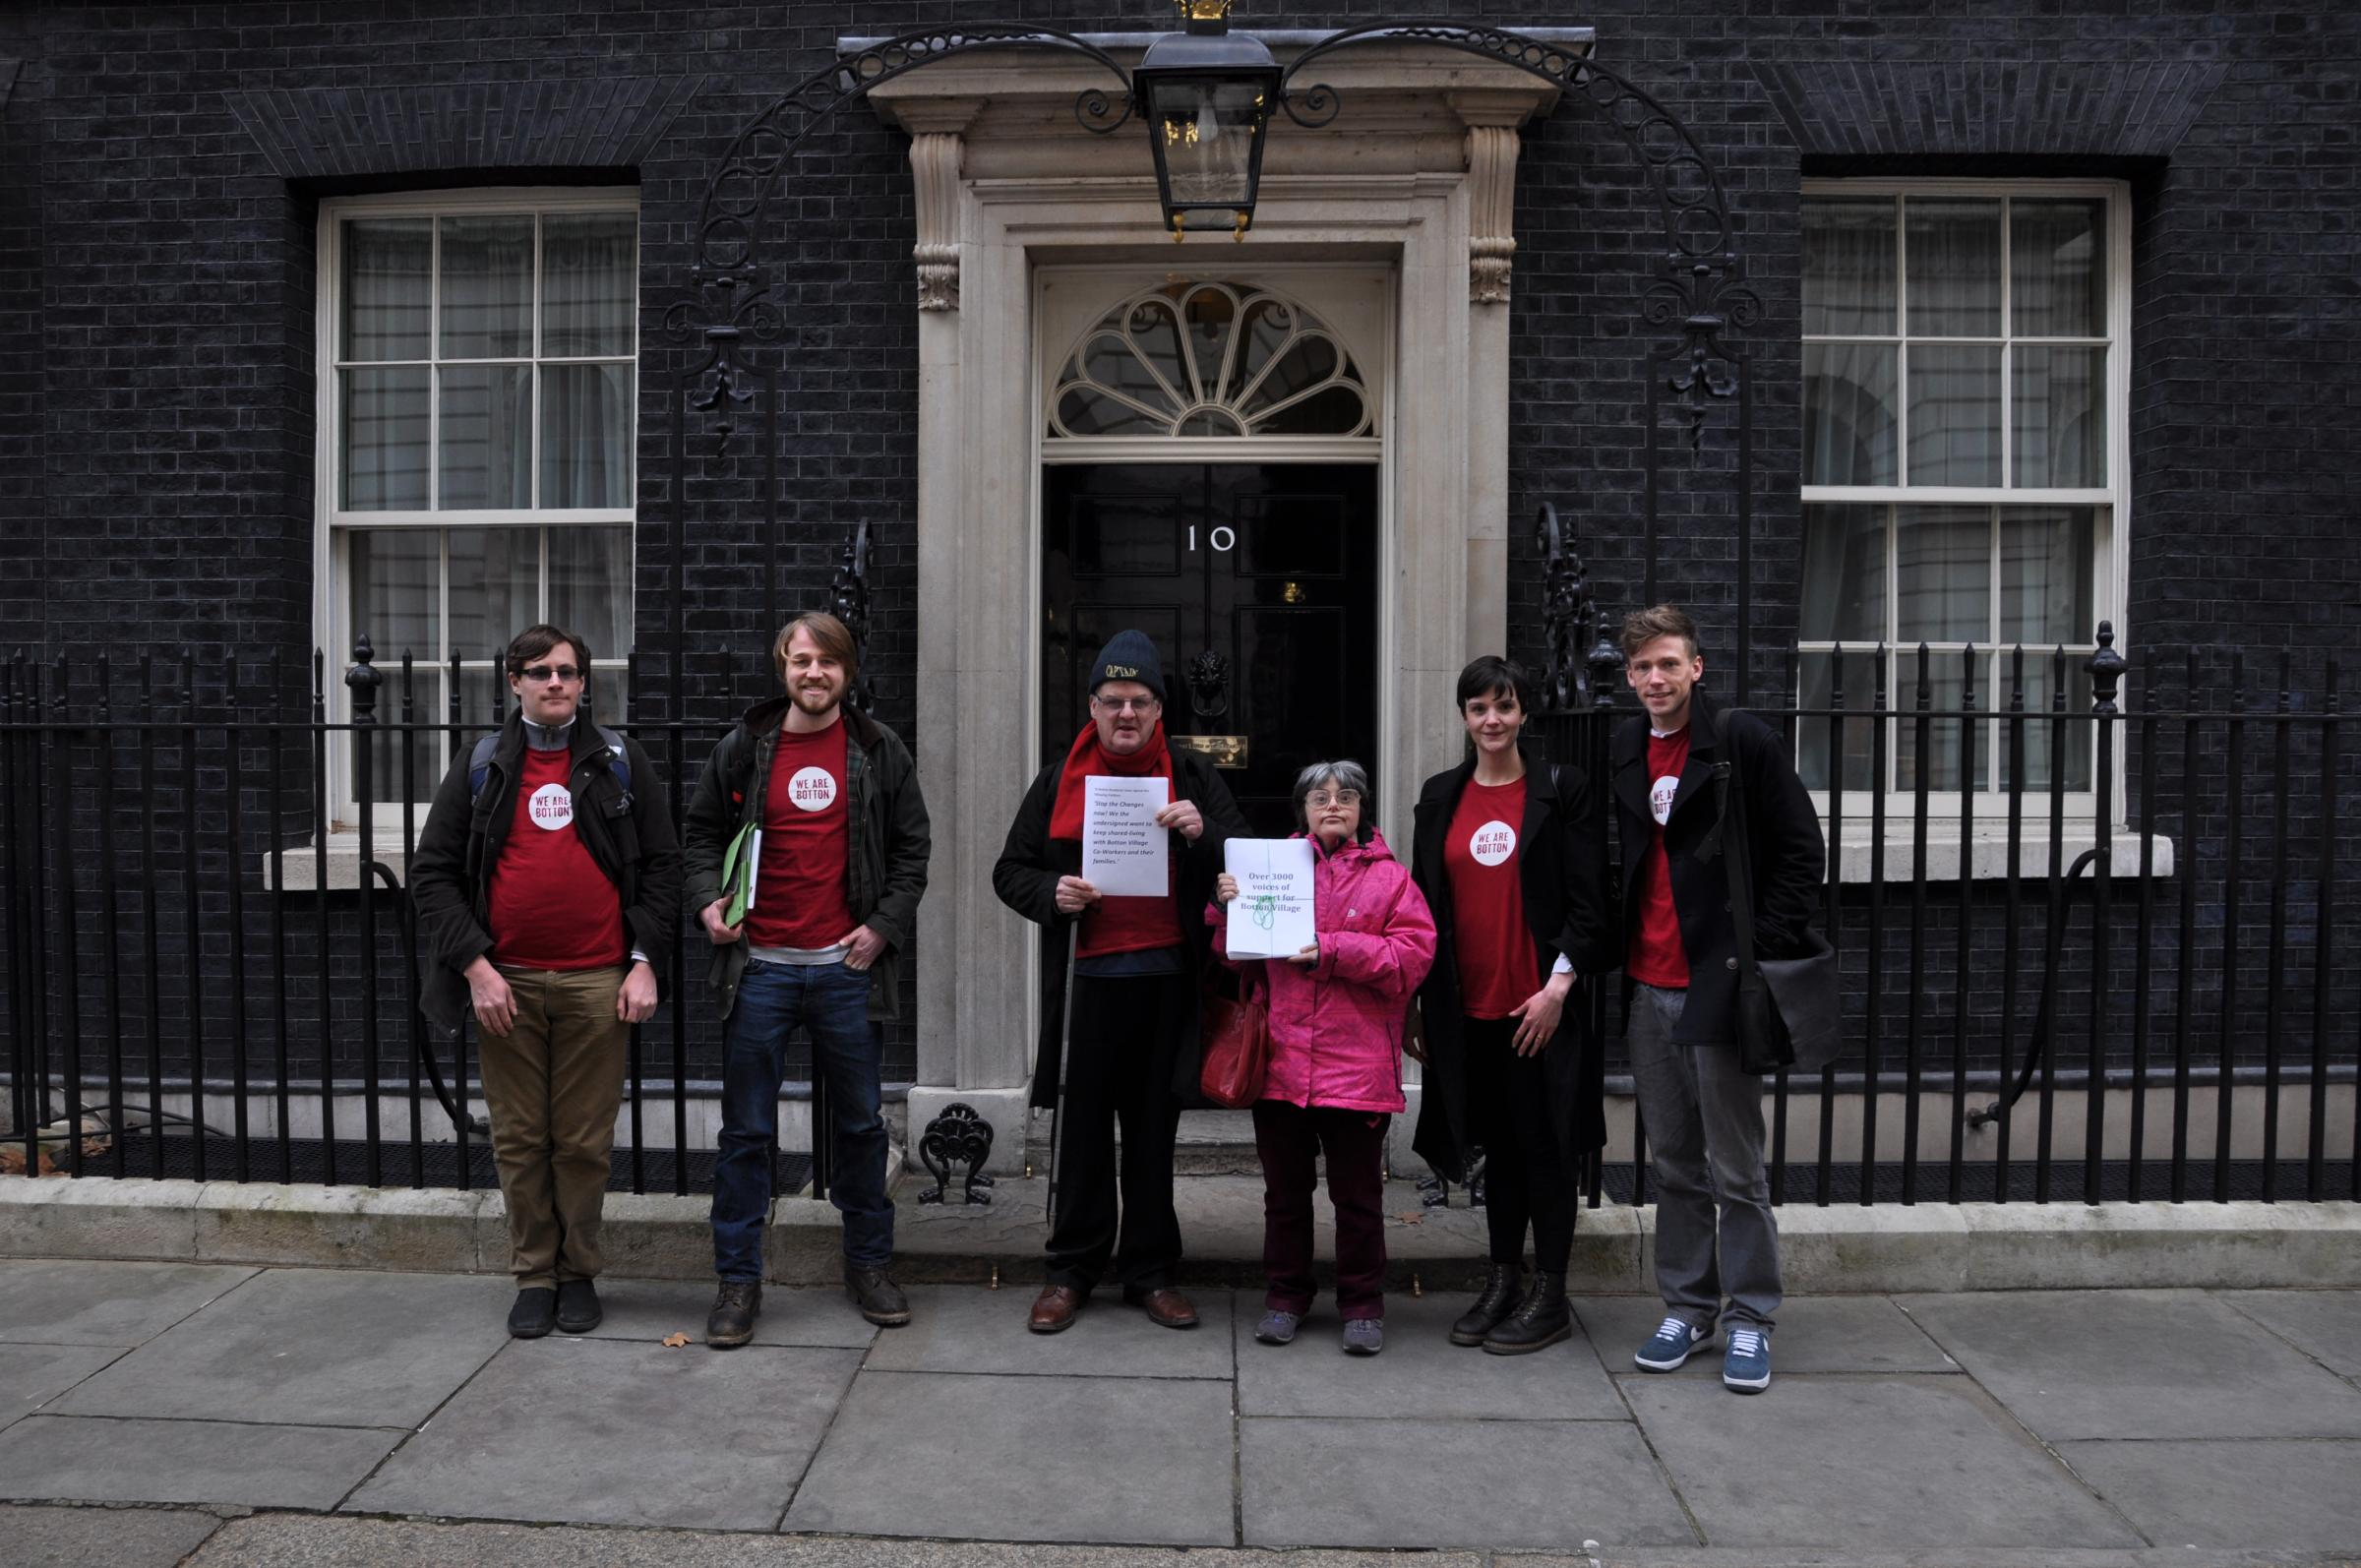 Pictured in Downing Street with their petition are, left to right, James Skinner, Eddie Thornton, Allan Hobson, Clare Burge, Lydia Gill Waring and Fionn Reid